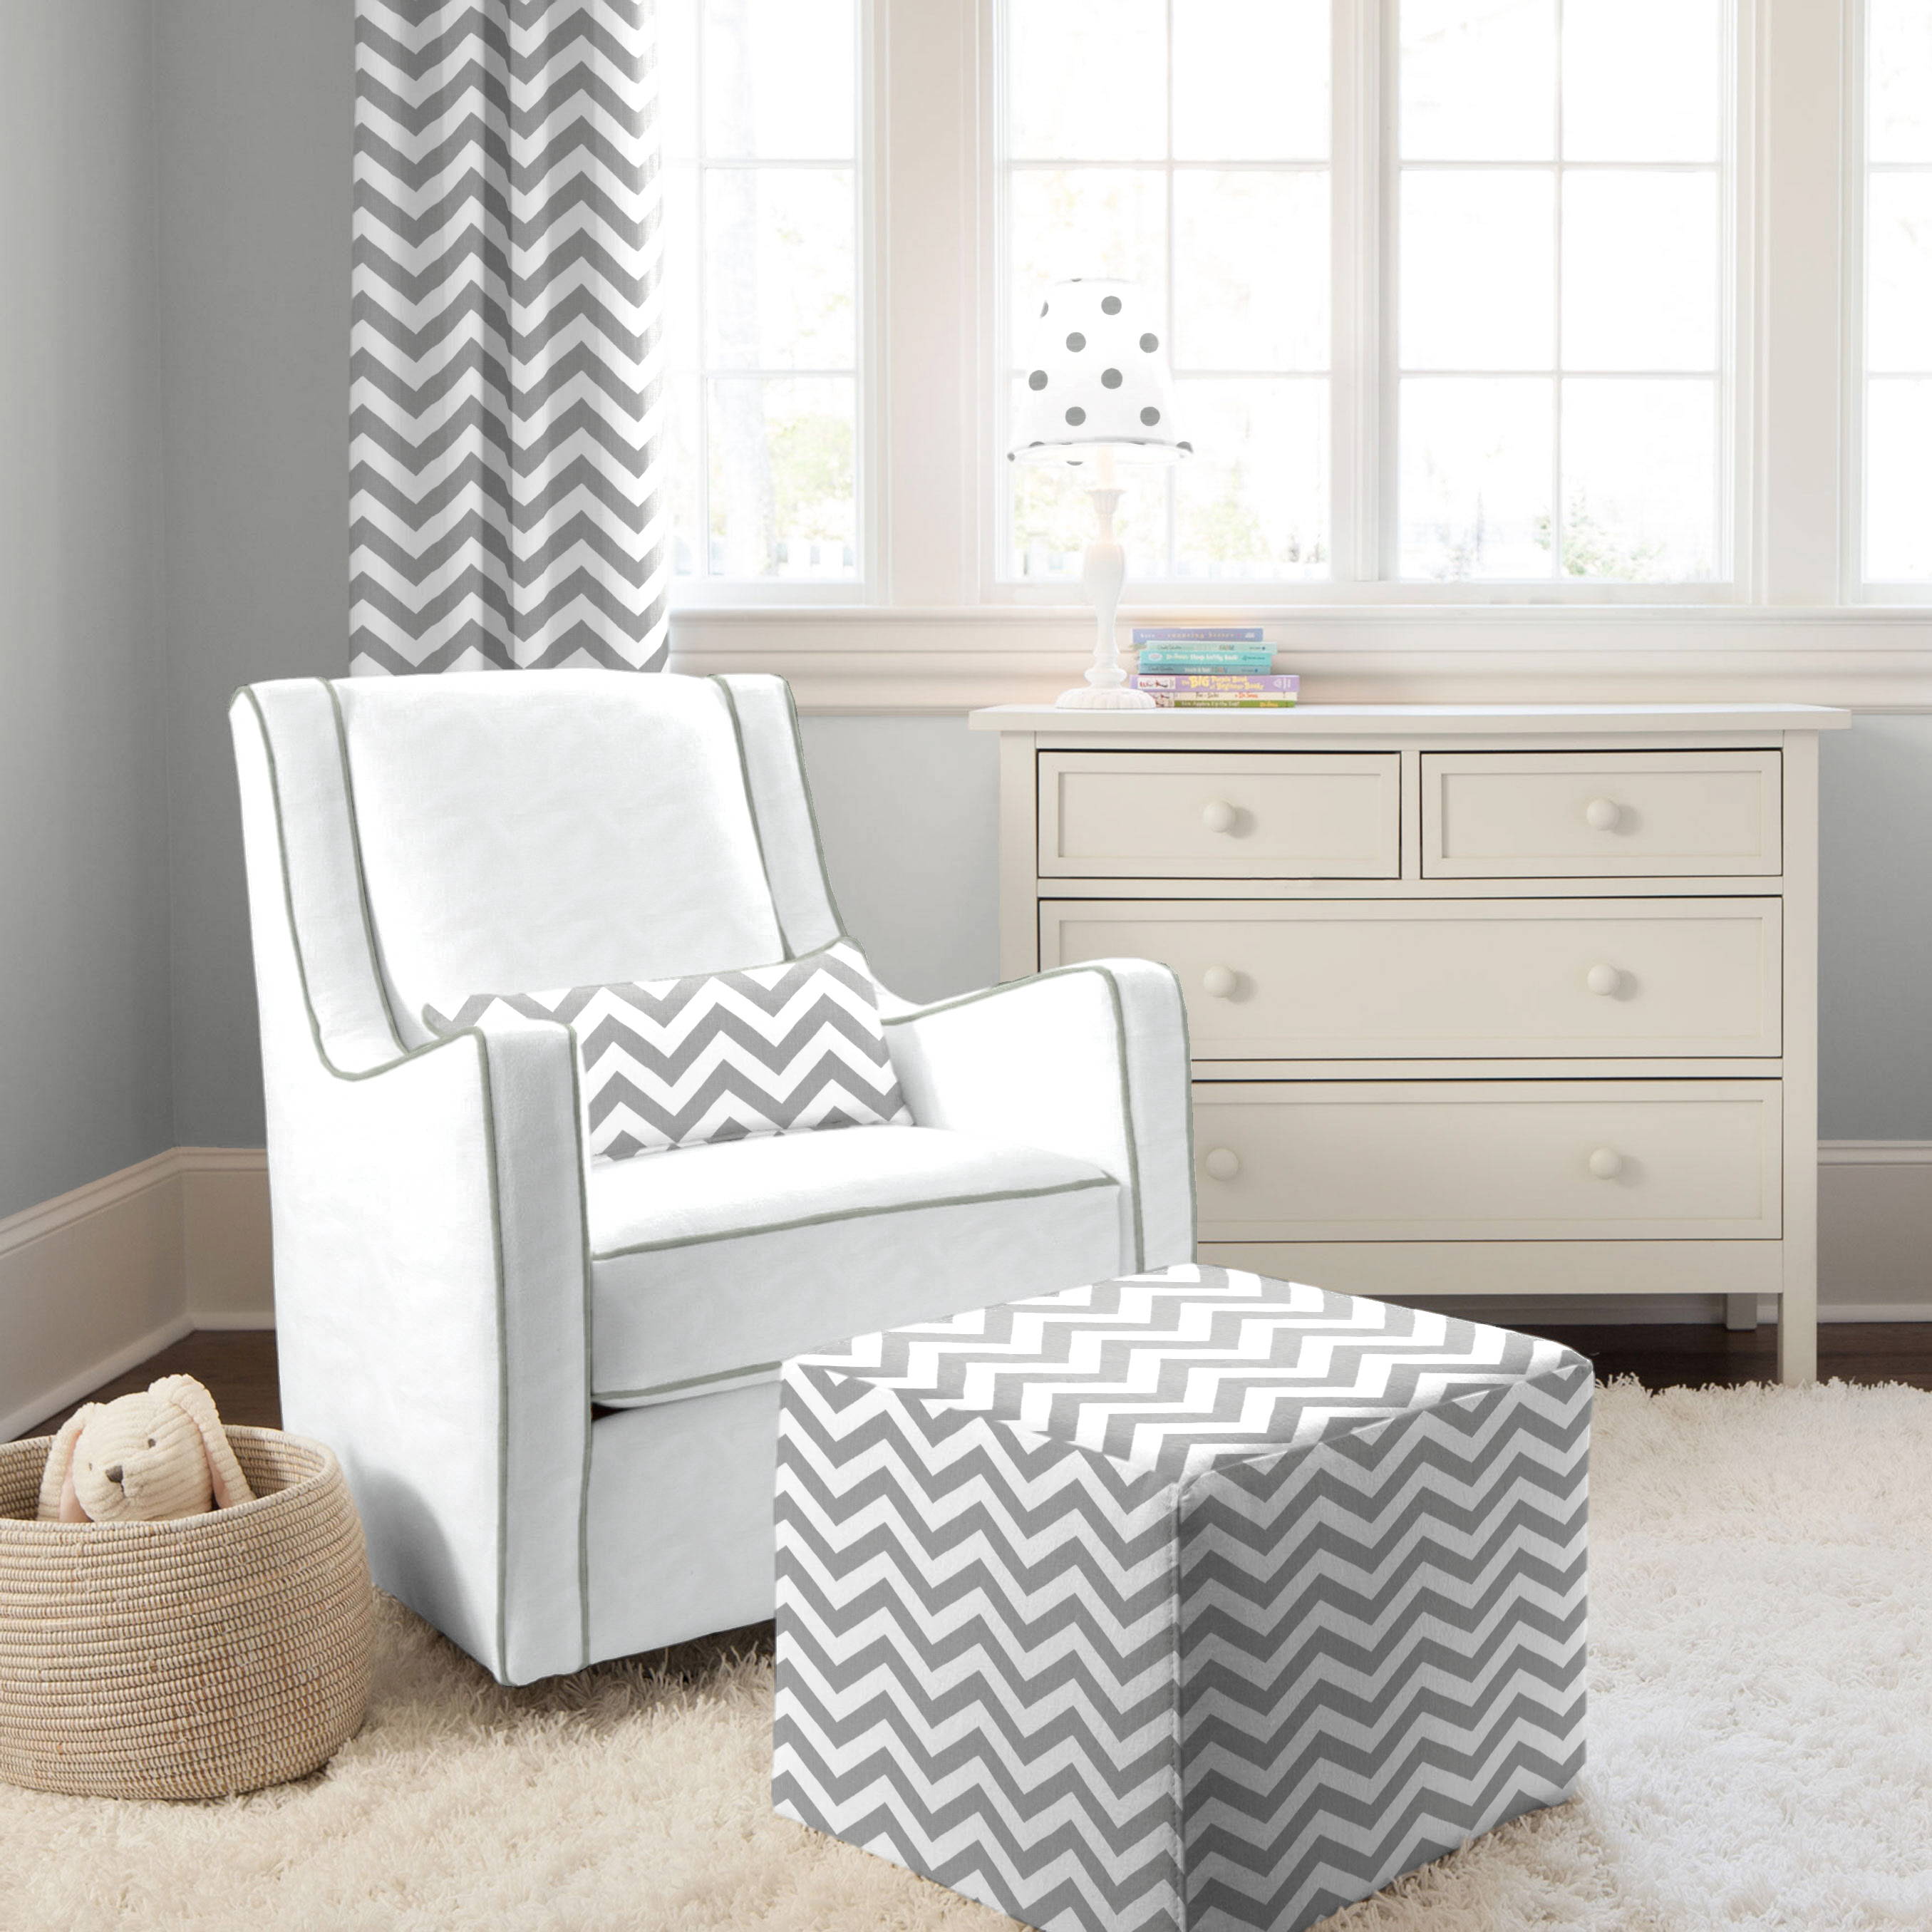 White Grey Glider Zig Zag Design Of Modern Rocking Chair For Nursery ...